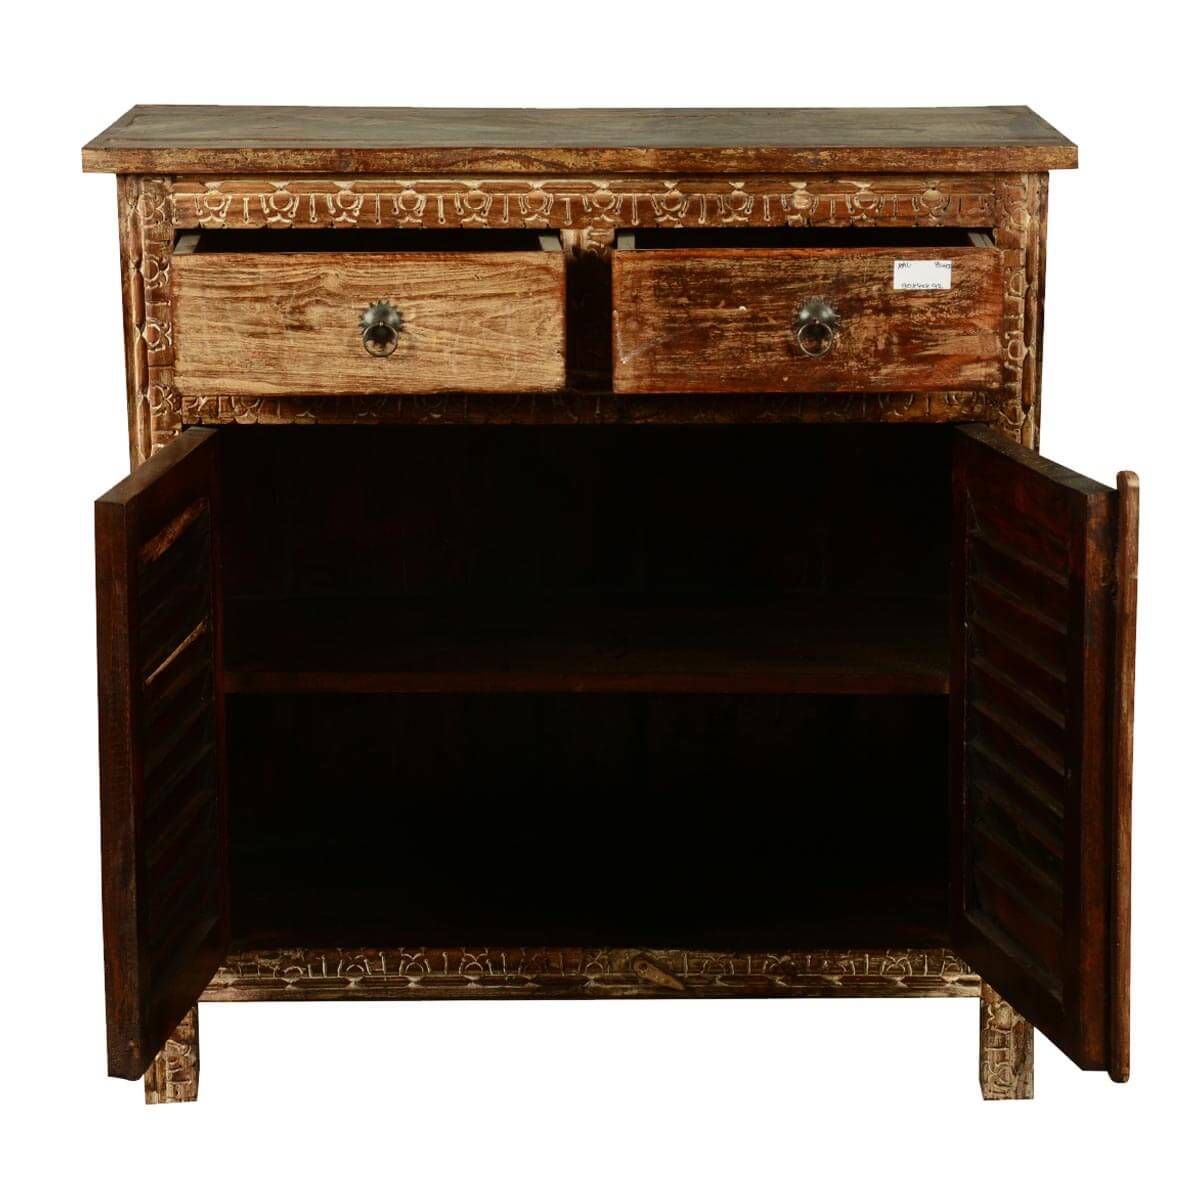 Distressed Reclaimed Wood Hand Carved Accent Cabinet With 2 Drawers